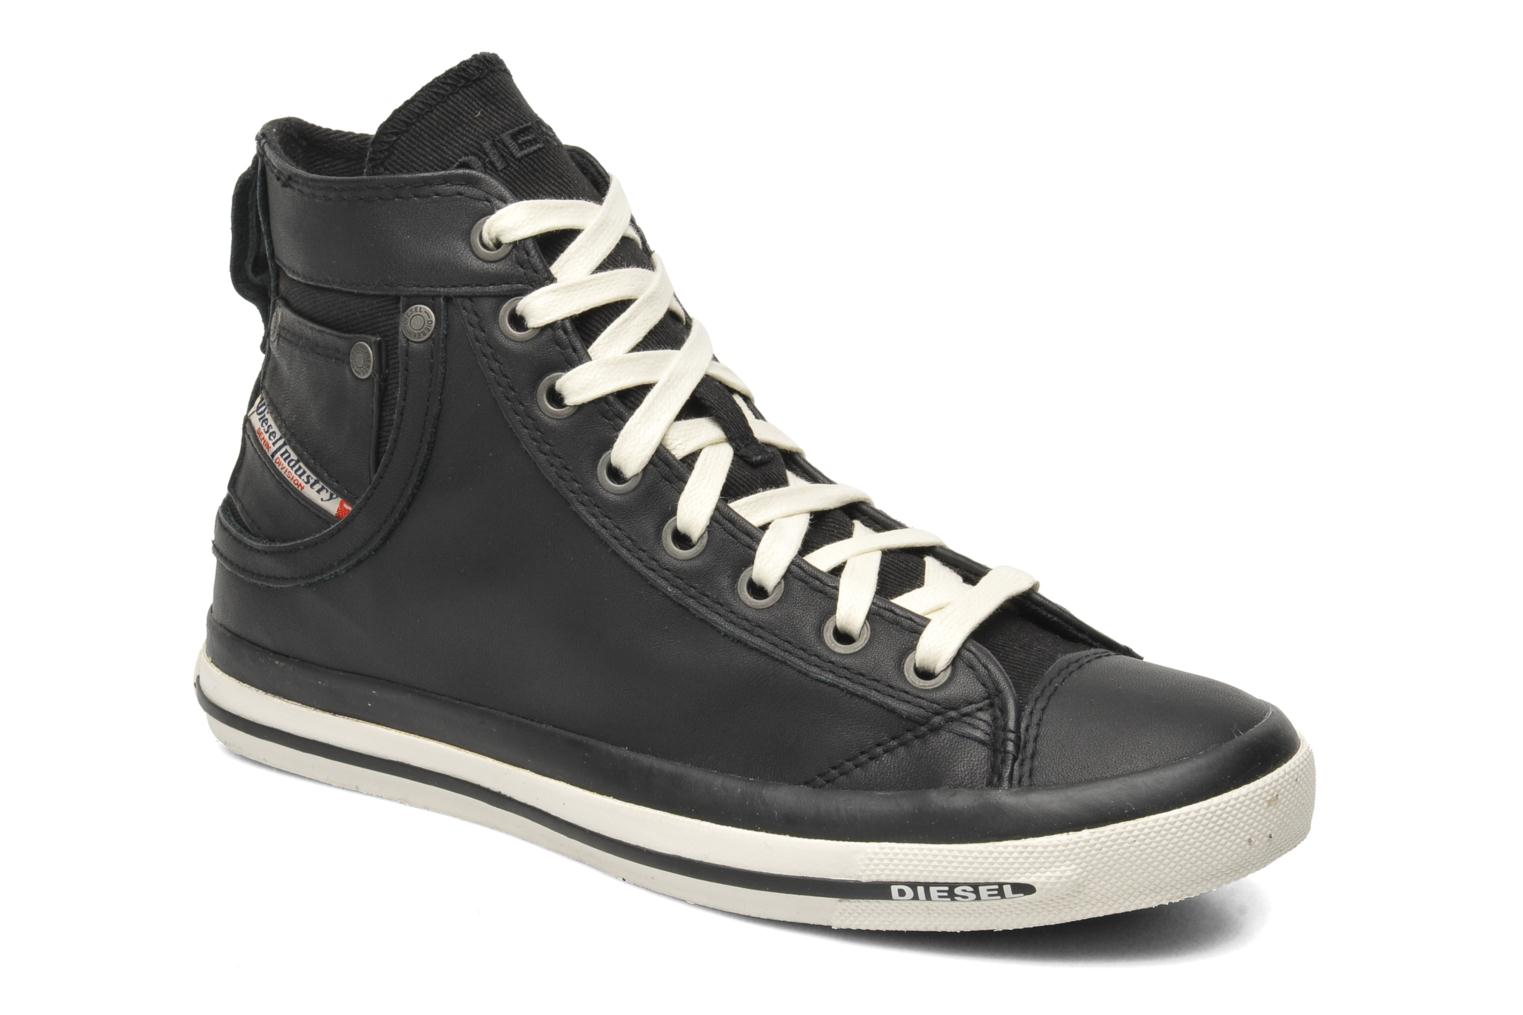 Sneakers Exposure I by Diesel